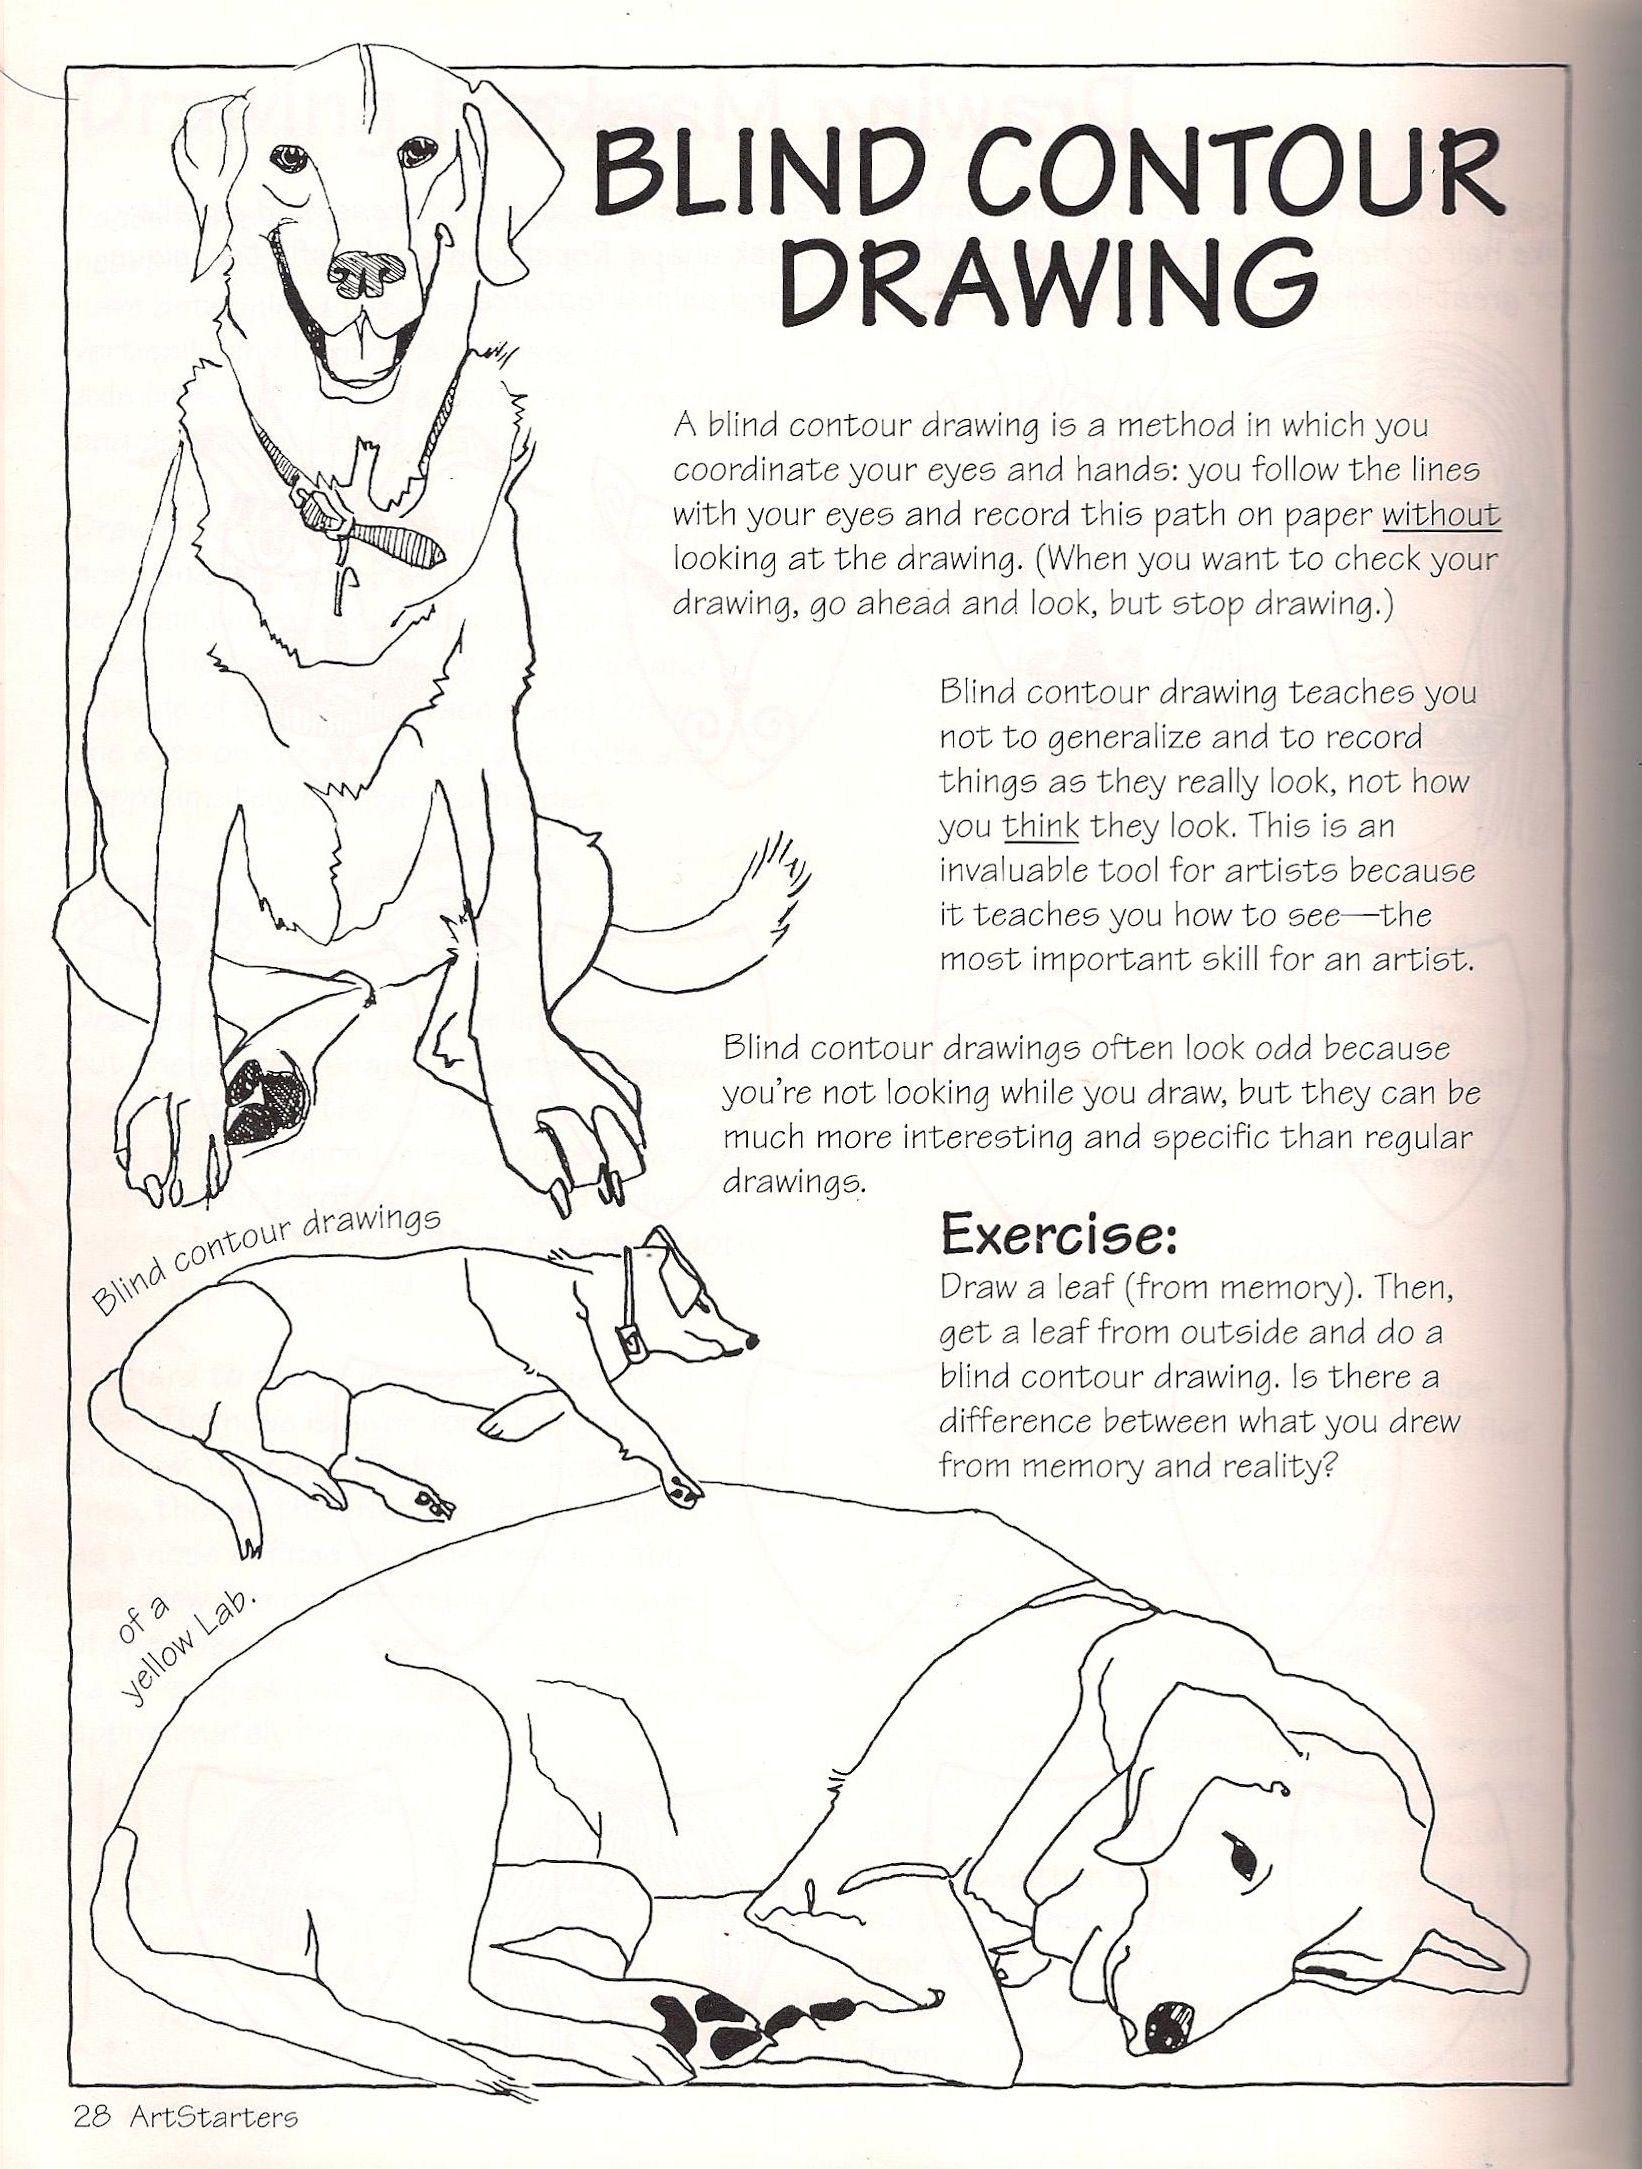 Pin By Ashlee On Techniques Drawing Pinterest Drawings How To Draw Wire Diagrams Http Picsboxbiz Key Howtodraw Fhrangersorg Cms Lib Pa01001569